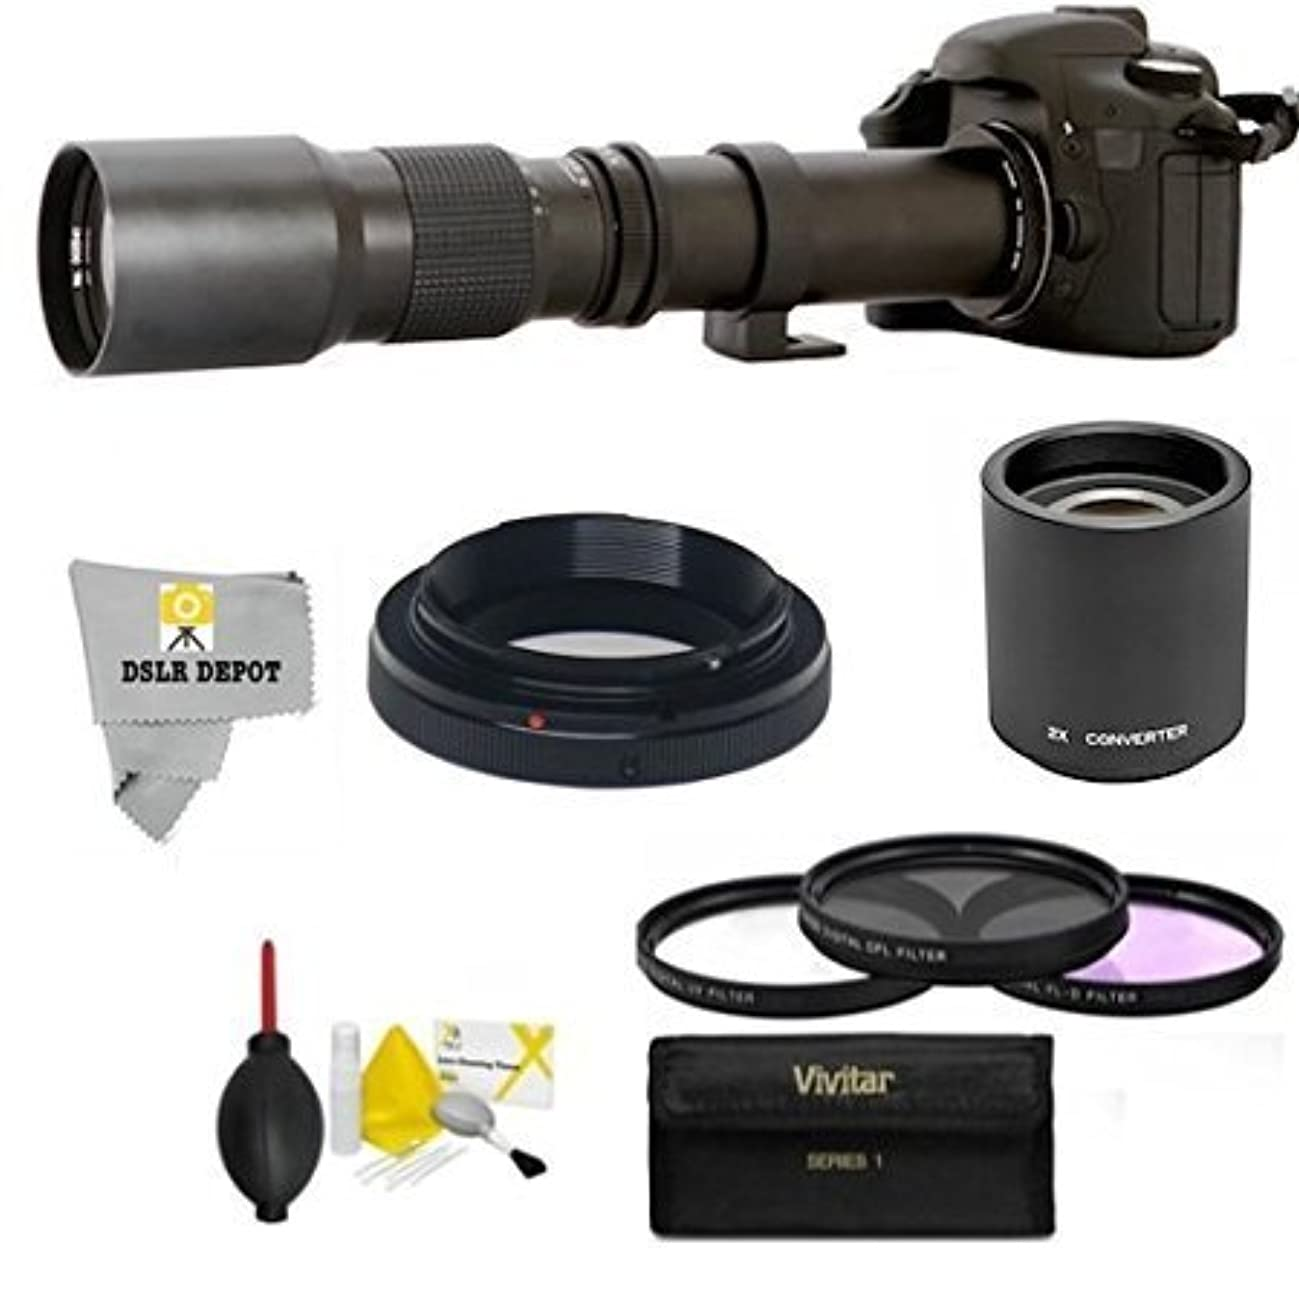 High-Power 500mm/1000mm f/8 Manual Telephoto Lens for Nikon D90, D500, D3000, D3100, D3200, D3300, D3400, D5000, D5100, D5200, D5300, D5500, D7000, D7100, D7200, D300, D300s, D600, D610, D700, D750,